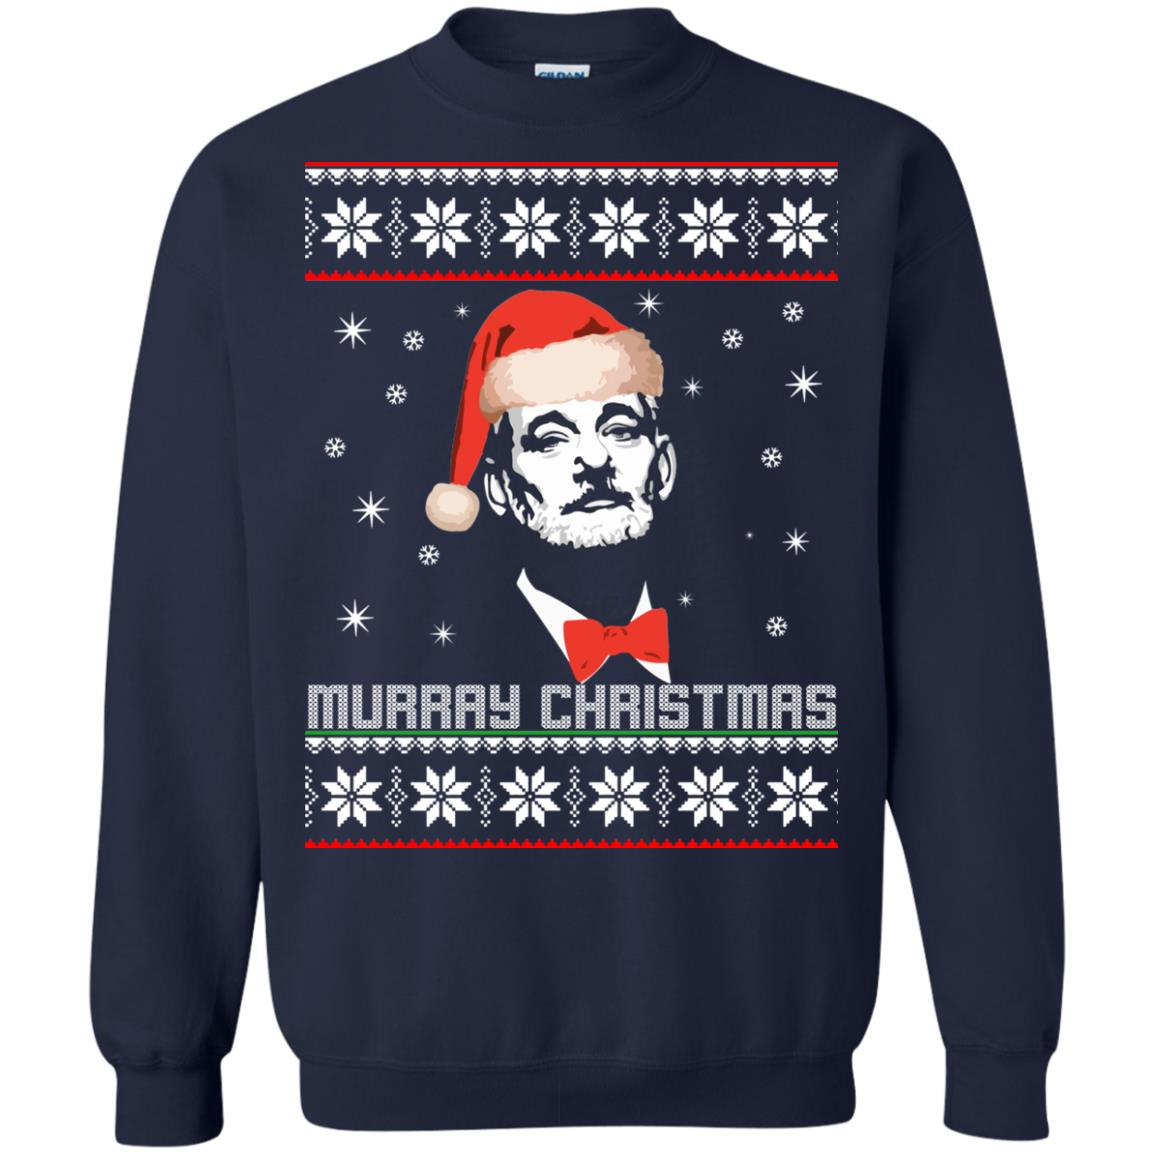 Murray Christmas Ugly Sweater, Shirt, Hoodie